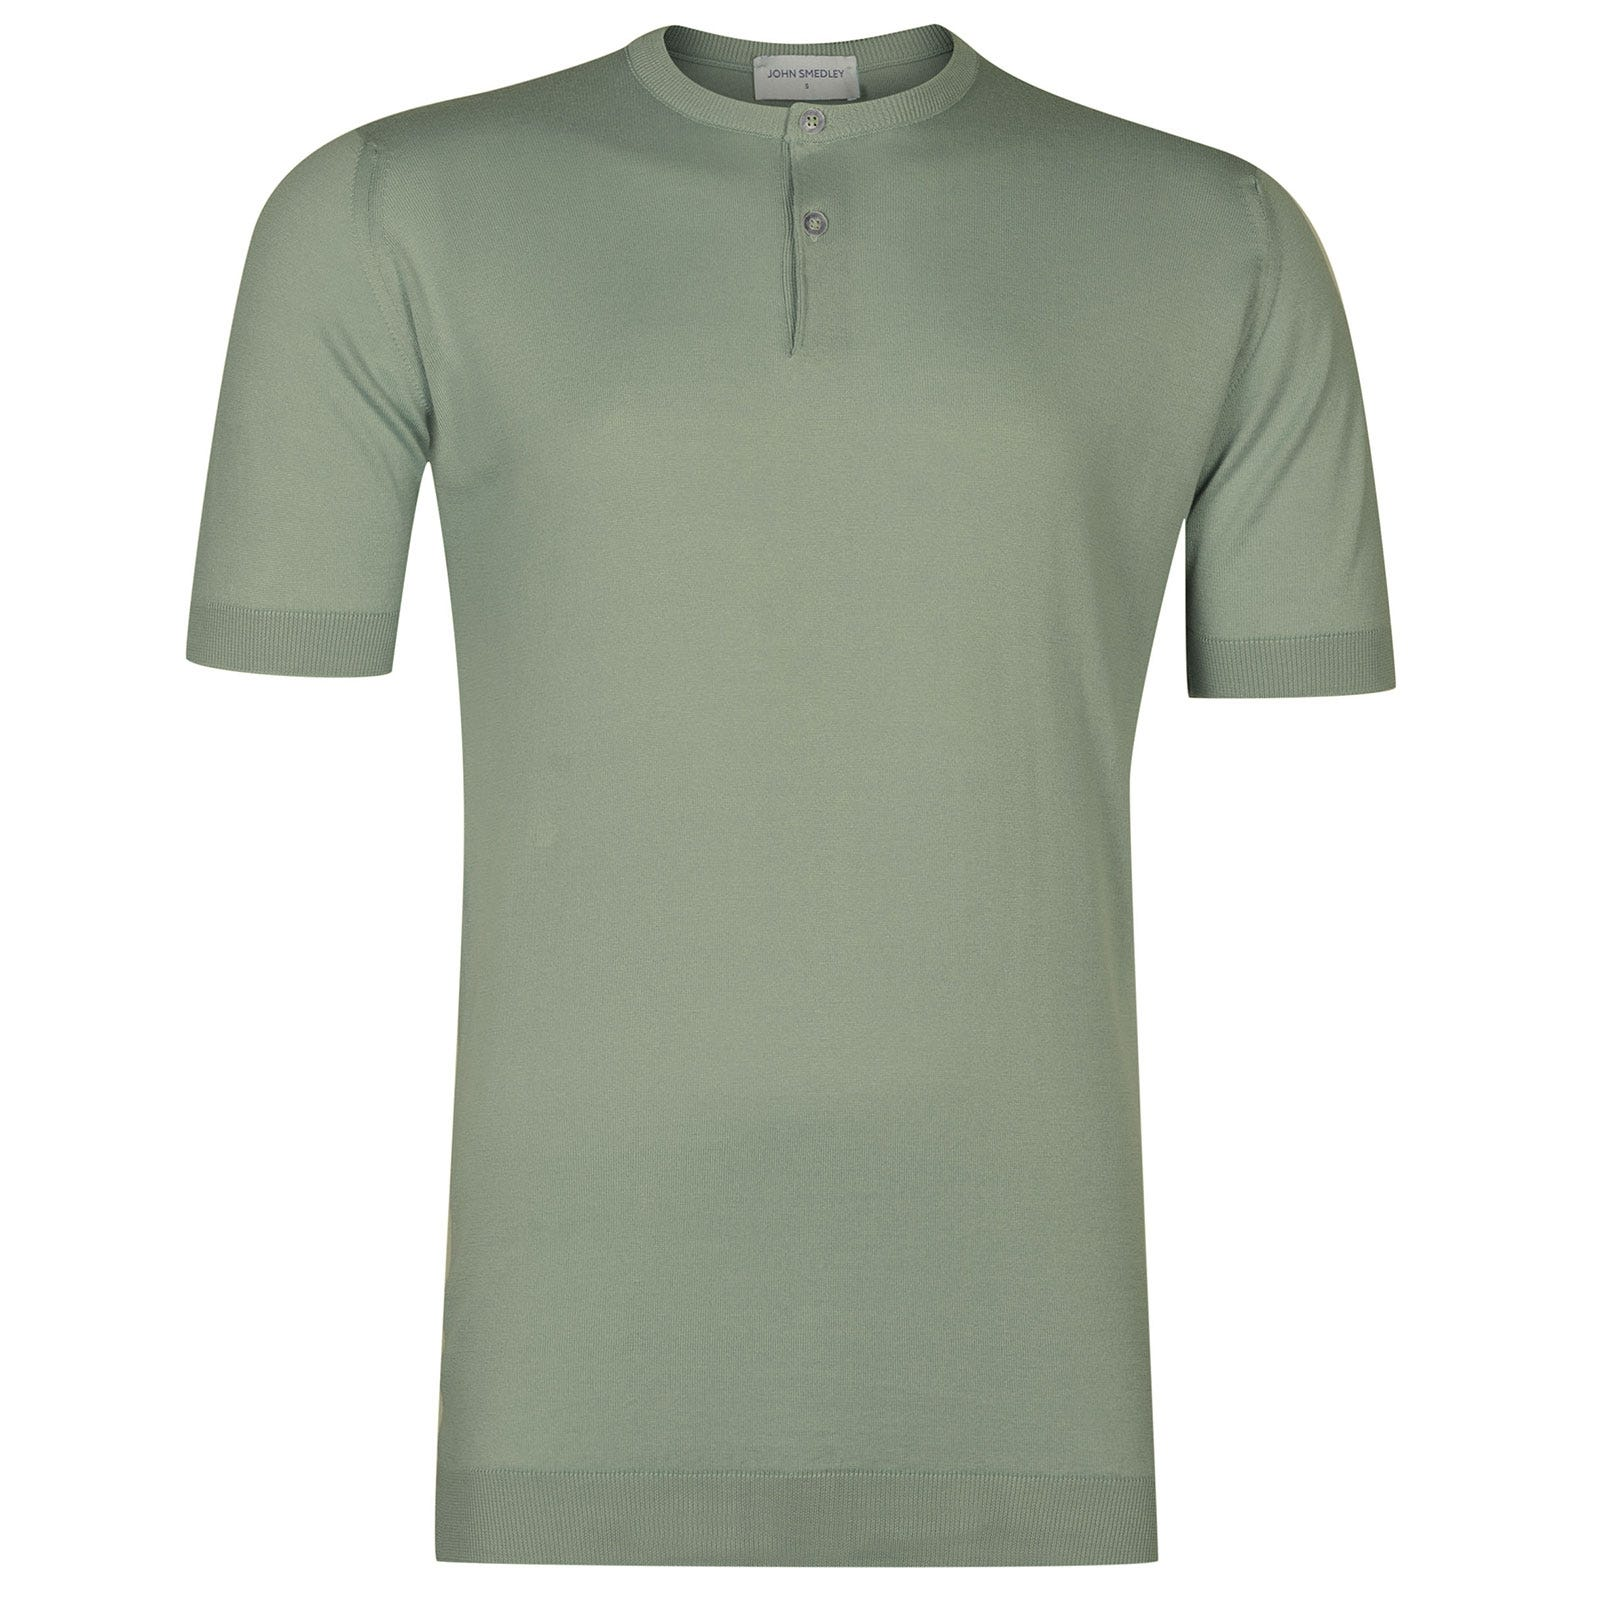 John Smedley Bennett Sea Island Cotton T-shirt in Gauge Green-S